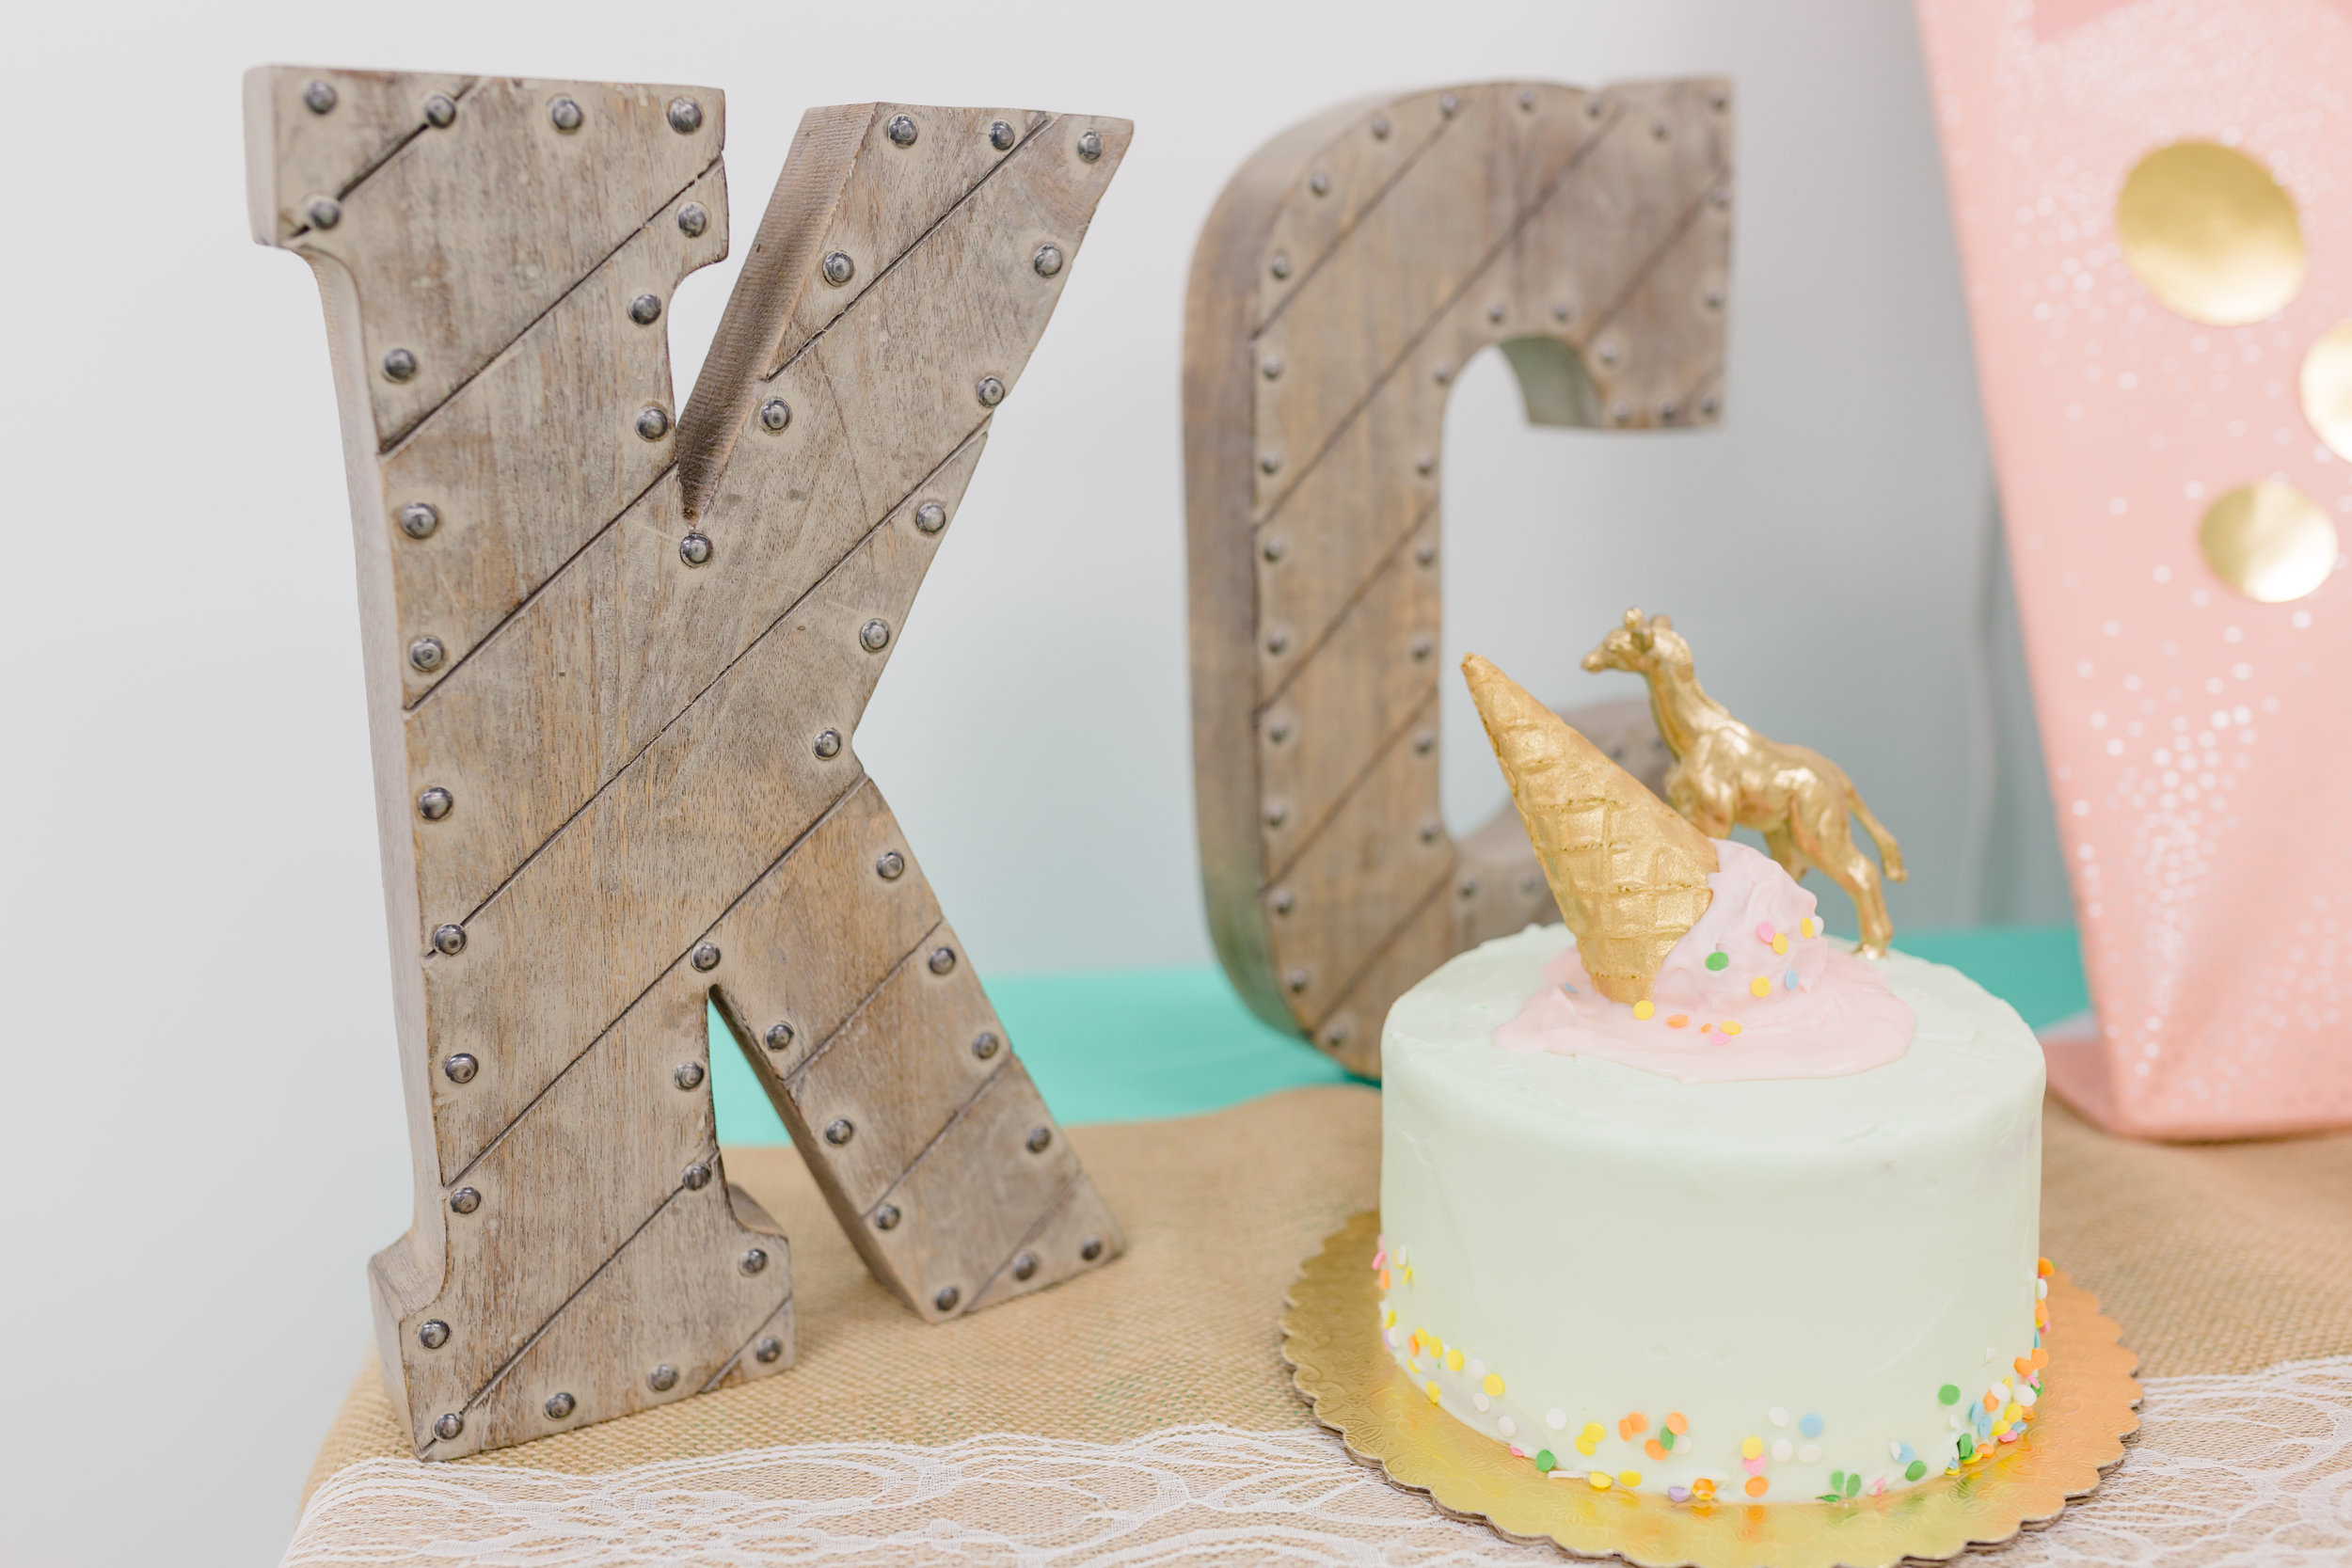 The mini smash cake Ariana made was the cutest up against Kalea's initials. The KC were a lucky find at Marshalls. The rustic color was perfect to help calm the bright tones of the table setting.